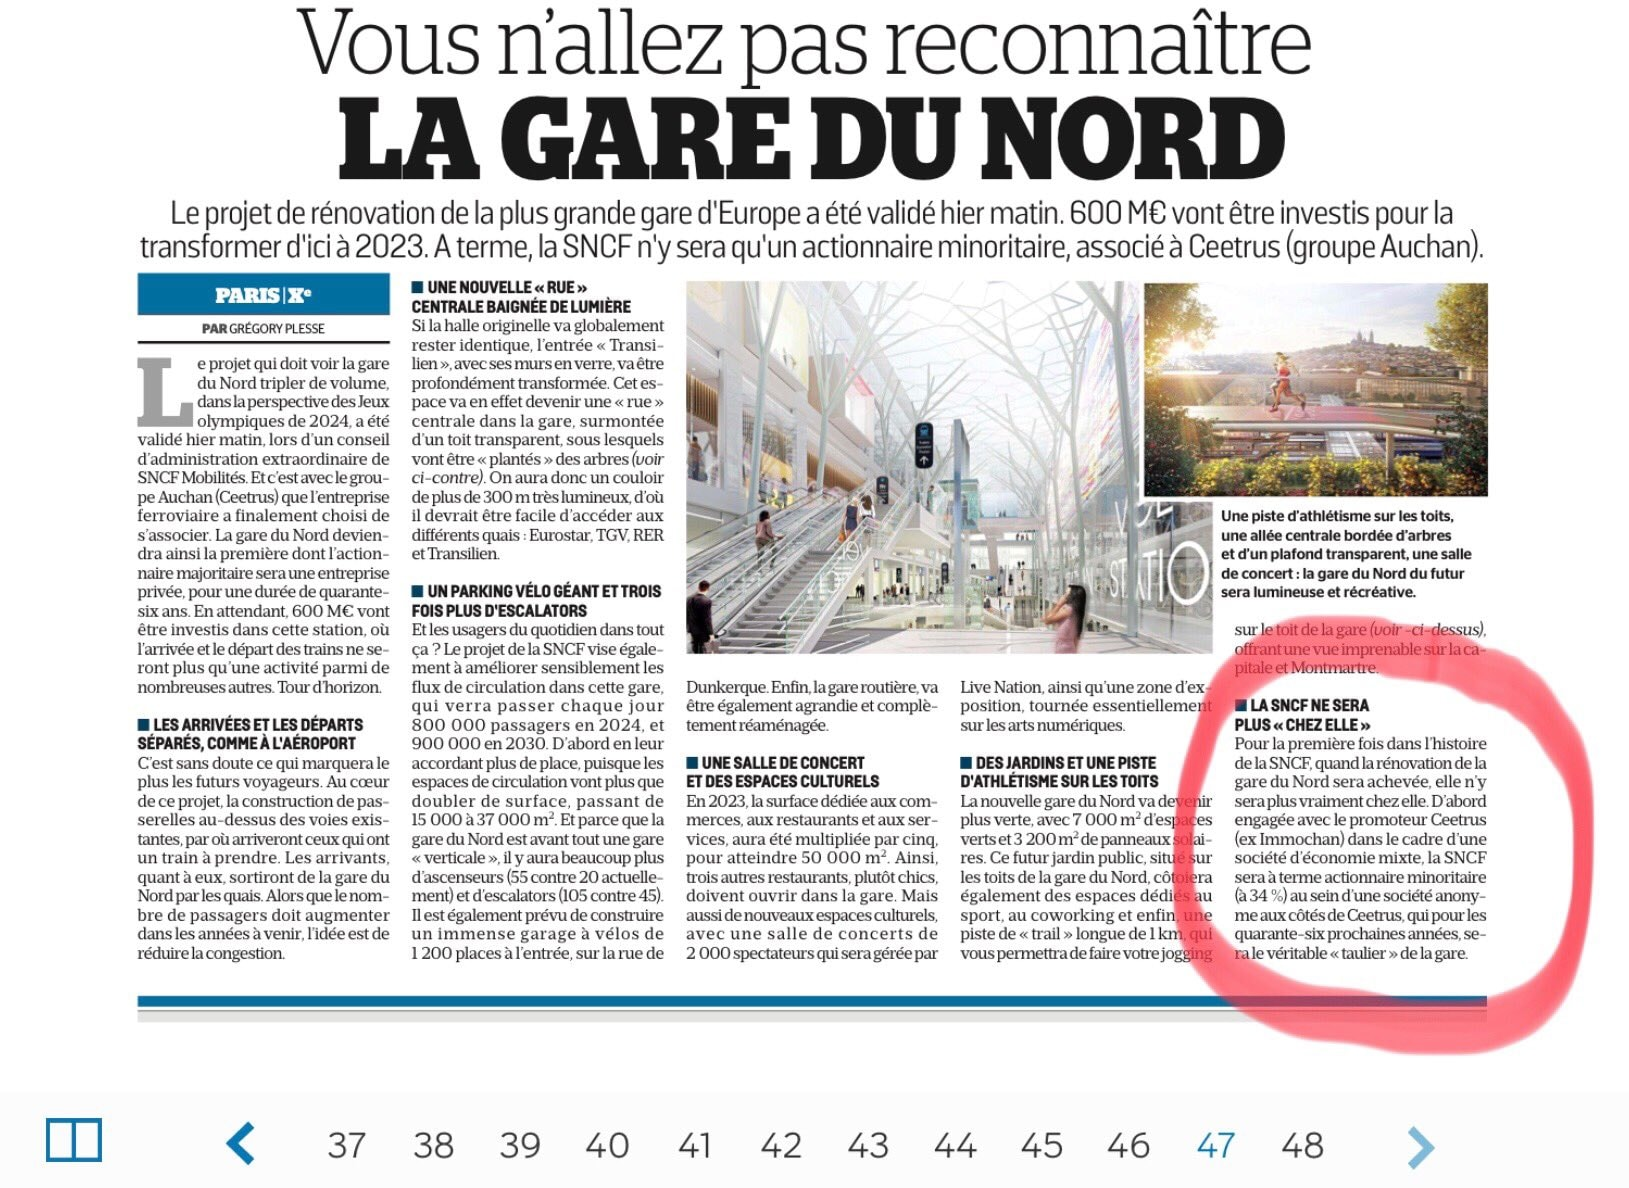 Privatisation De La Gare Du Nord